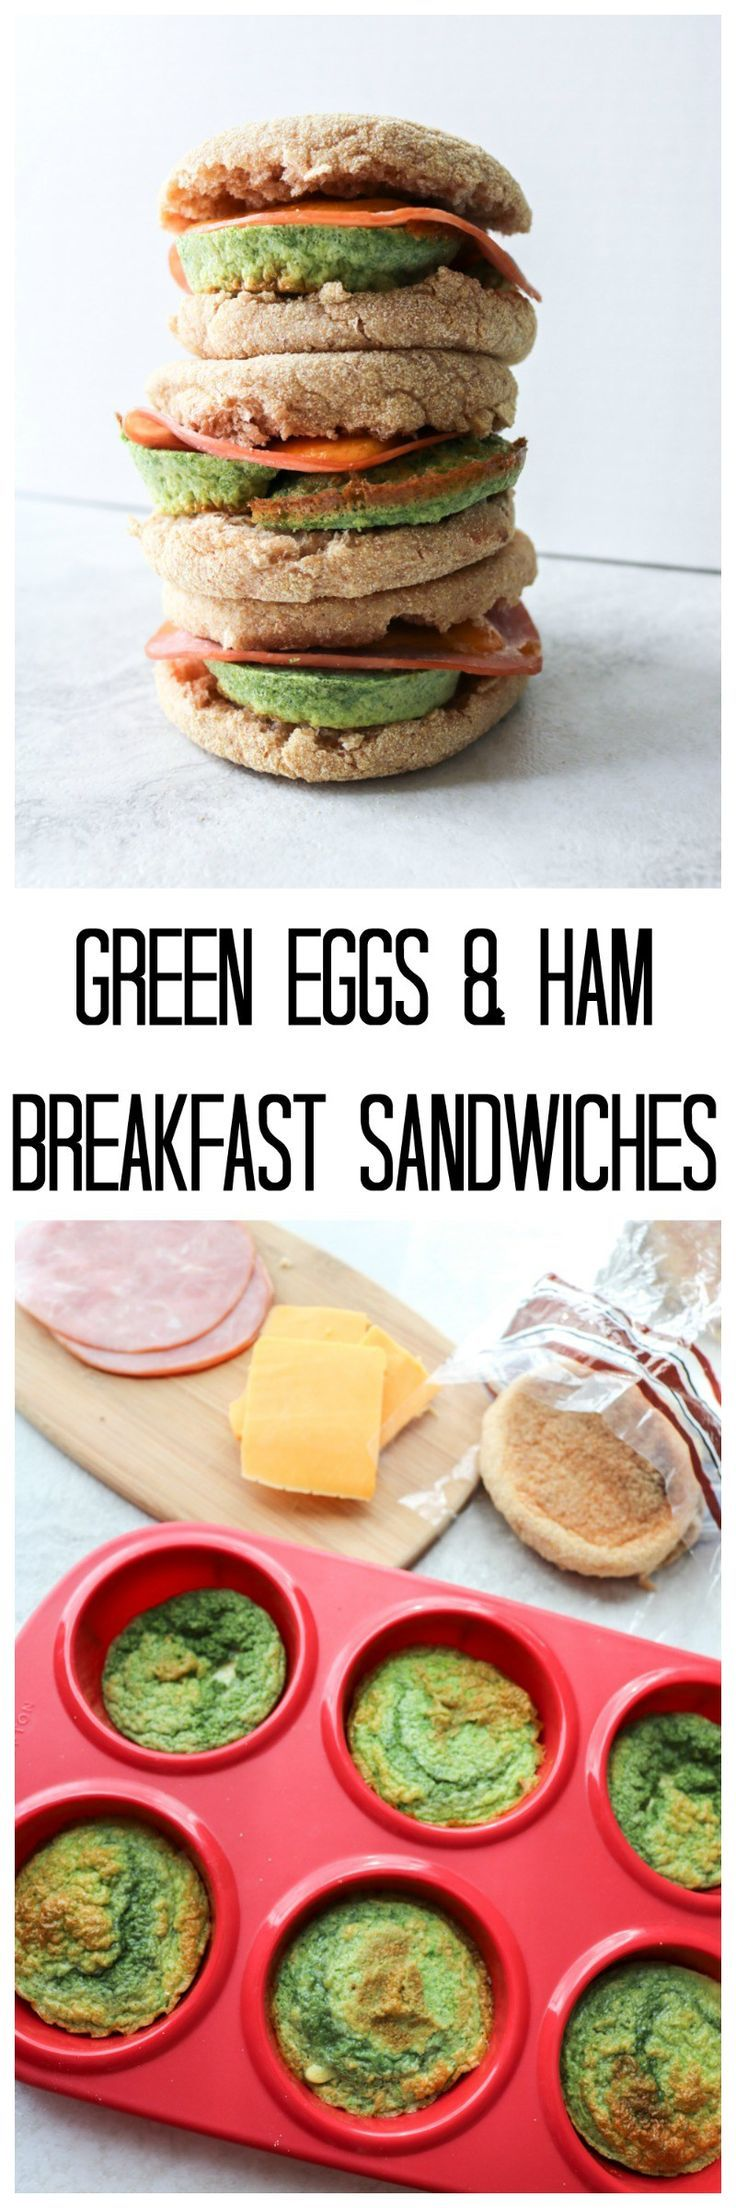 "Green Eggs and Ham Breakfast Sandwiches: Naturally ""dyed"" with spinach eggs are paired with ham and sharp cheddar cheese to create a portable breakfast sandwich that is easily made ahead and freezer-friendly."